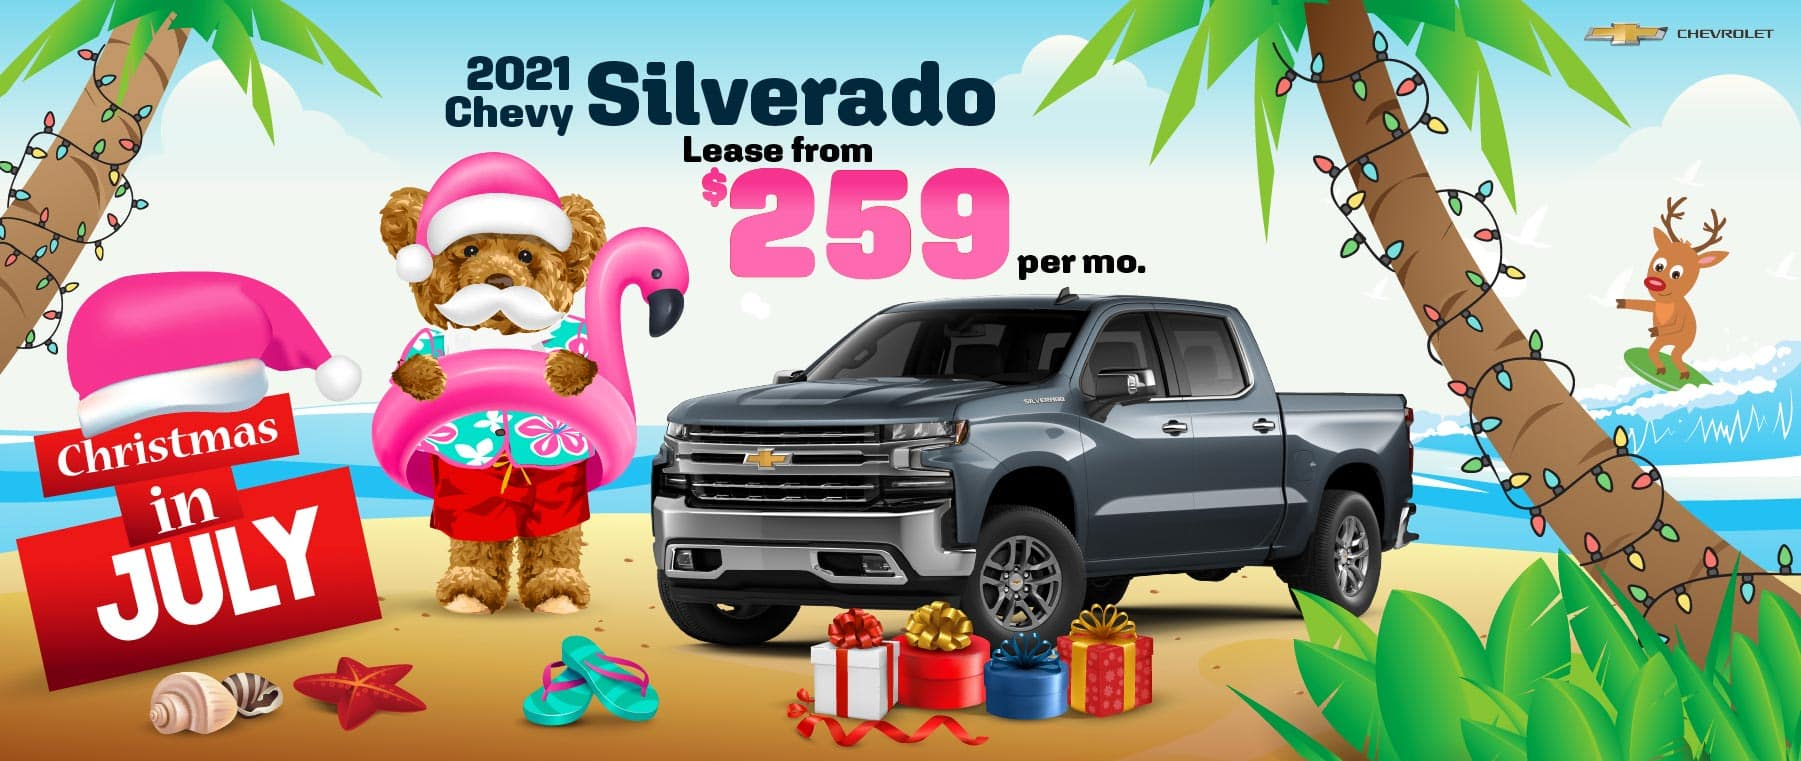 2021 Chevy Silverado - Lease From $259 per month